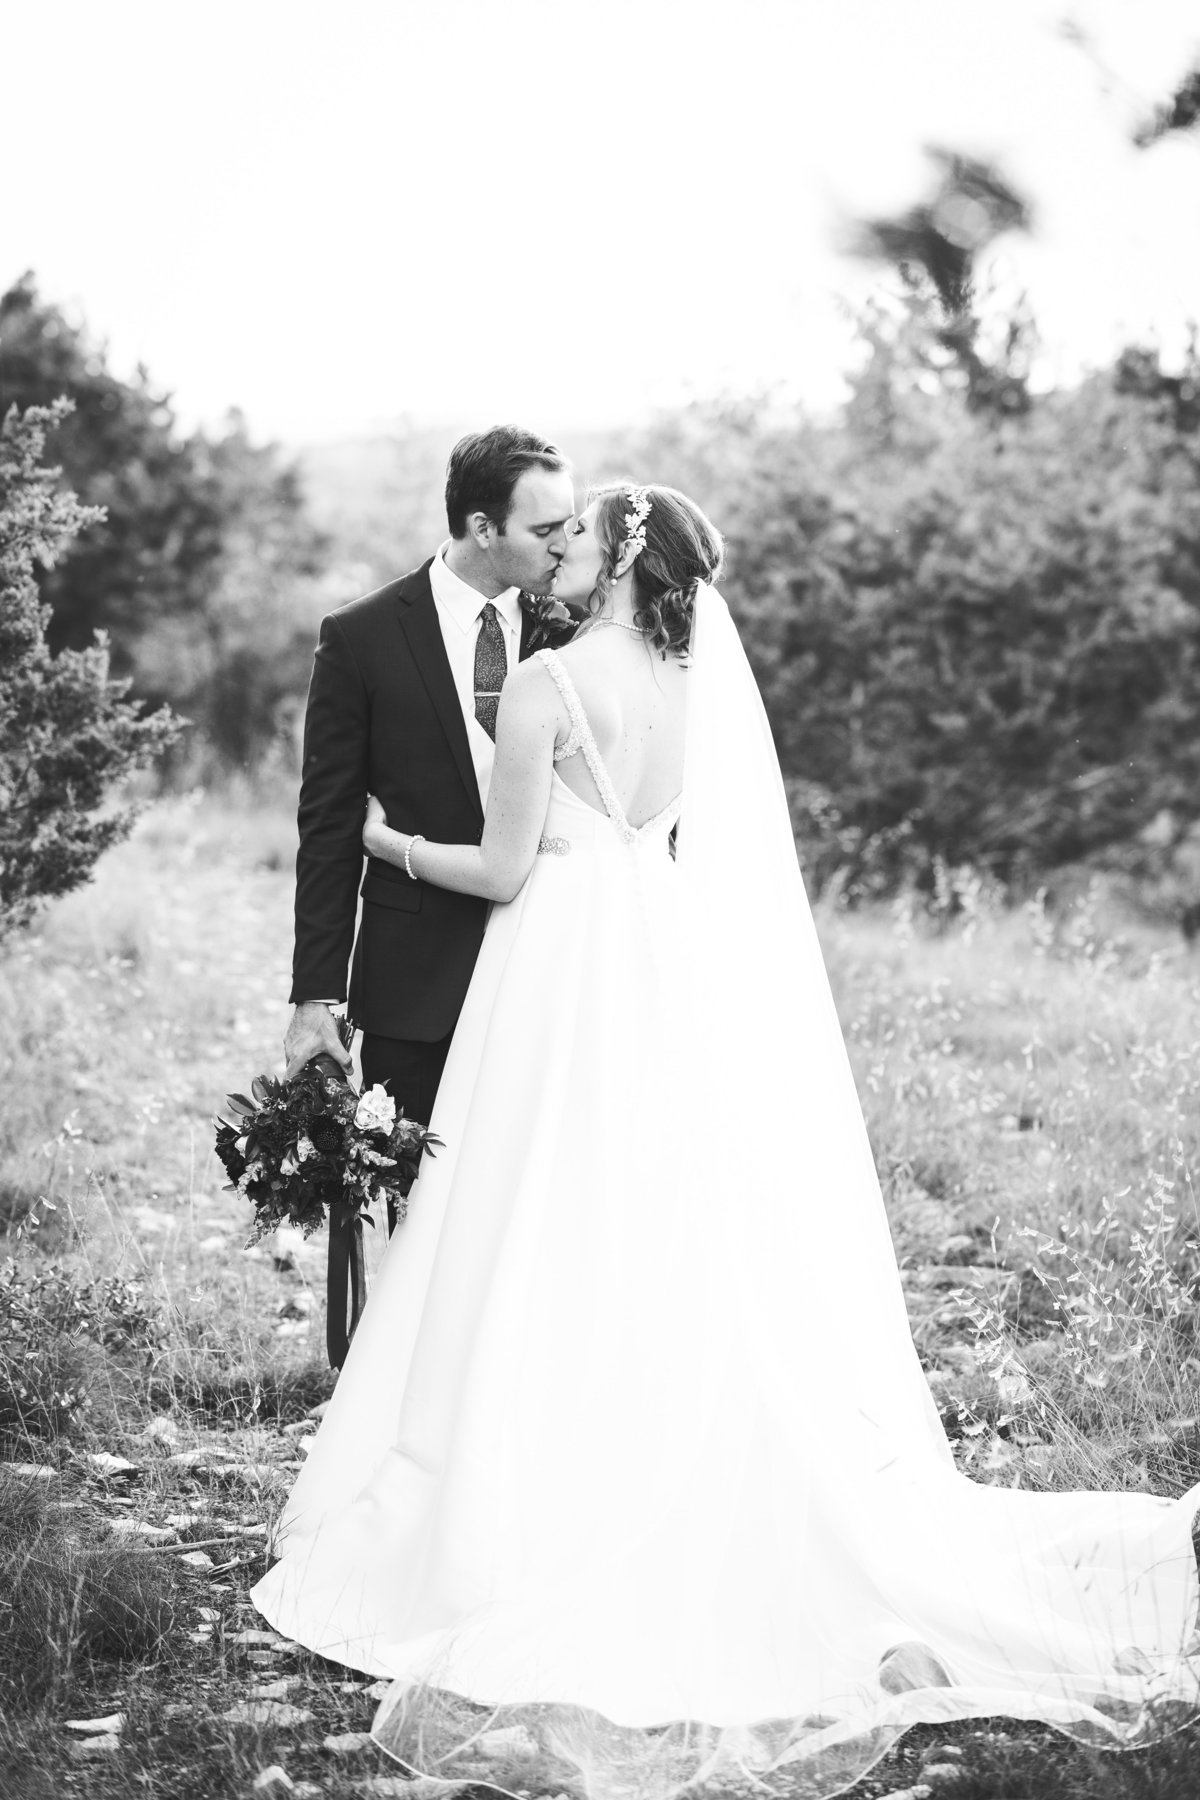 terrace club wedding photographer romantic kiss bride groom natural light 2600 US-290, Dripping Springs, TX 78620